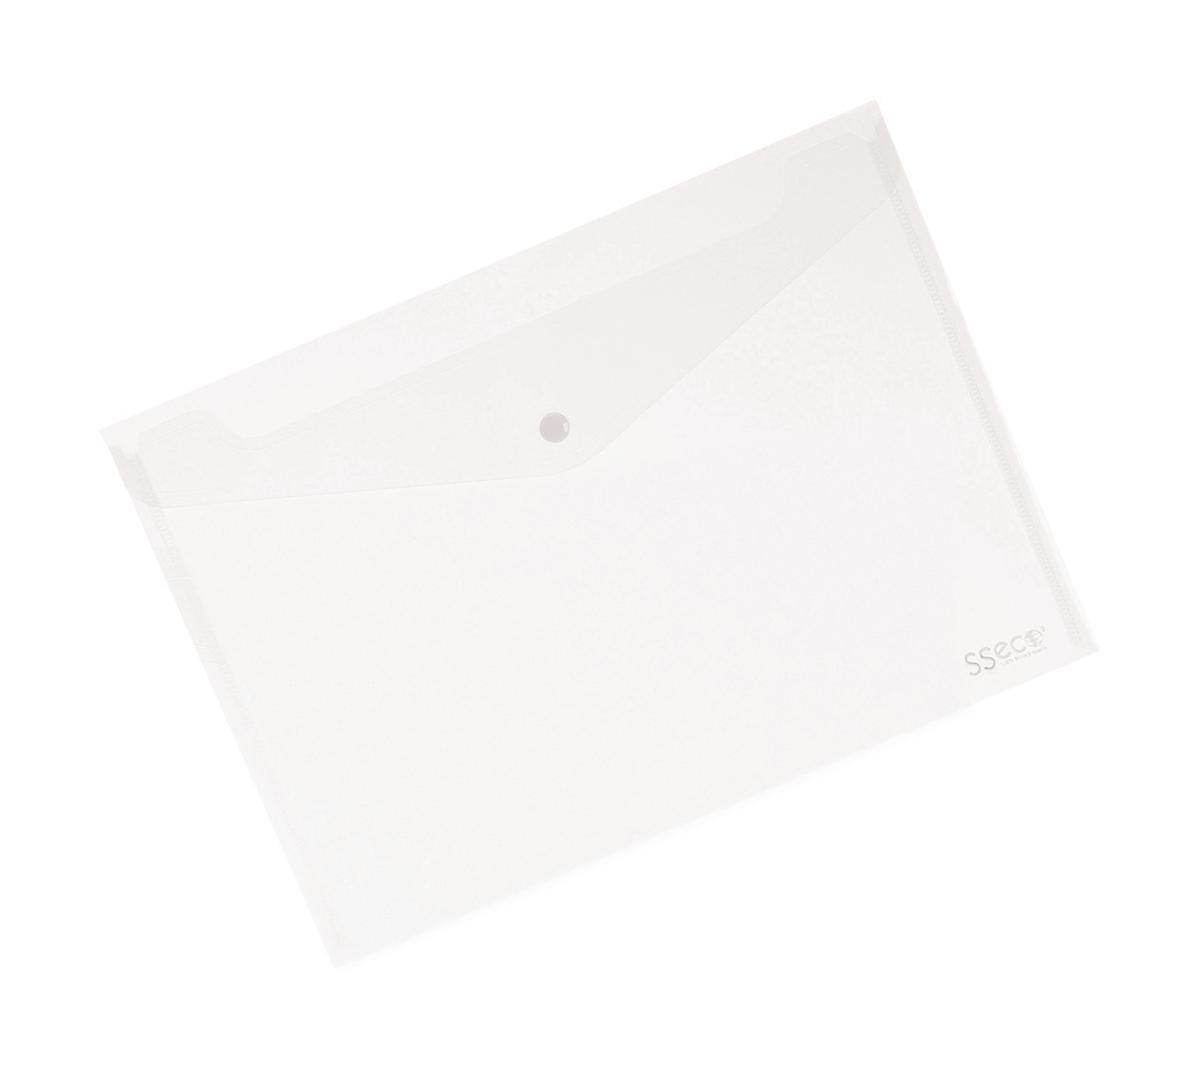 Image for SSeco Wallet Popper Seal Heavy-duty Polypropylene Oxo-biodegradable A4 Clear Ref 30085-CL [Pack 5]